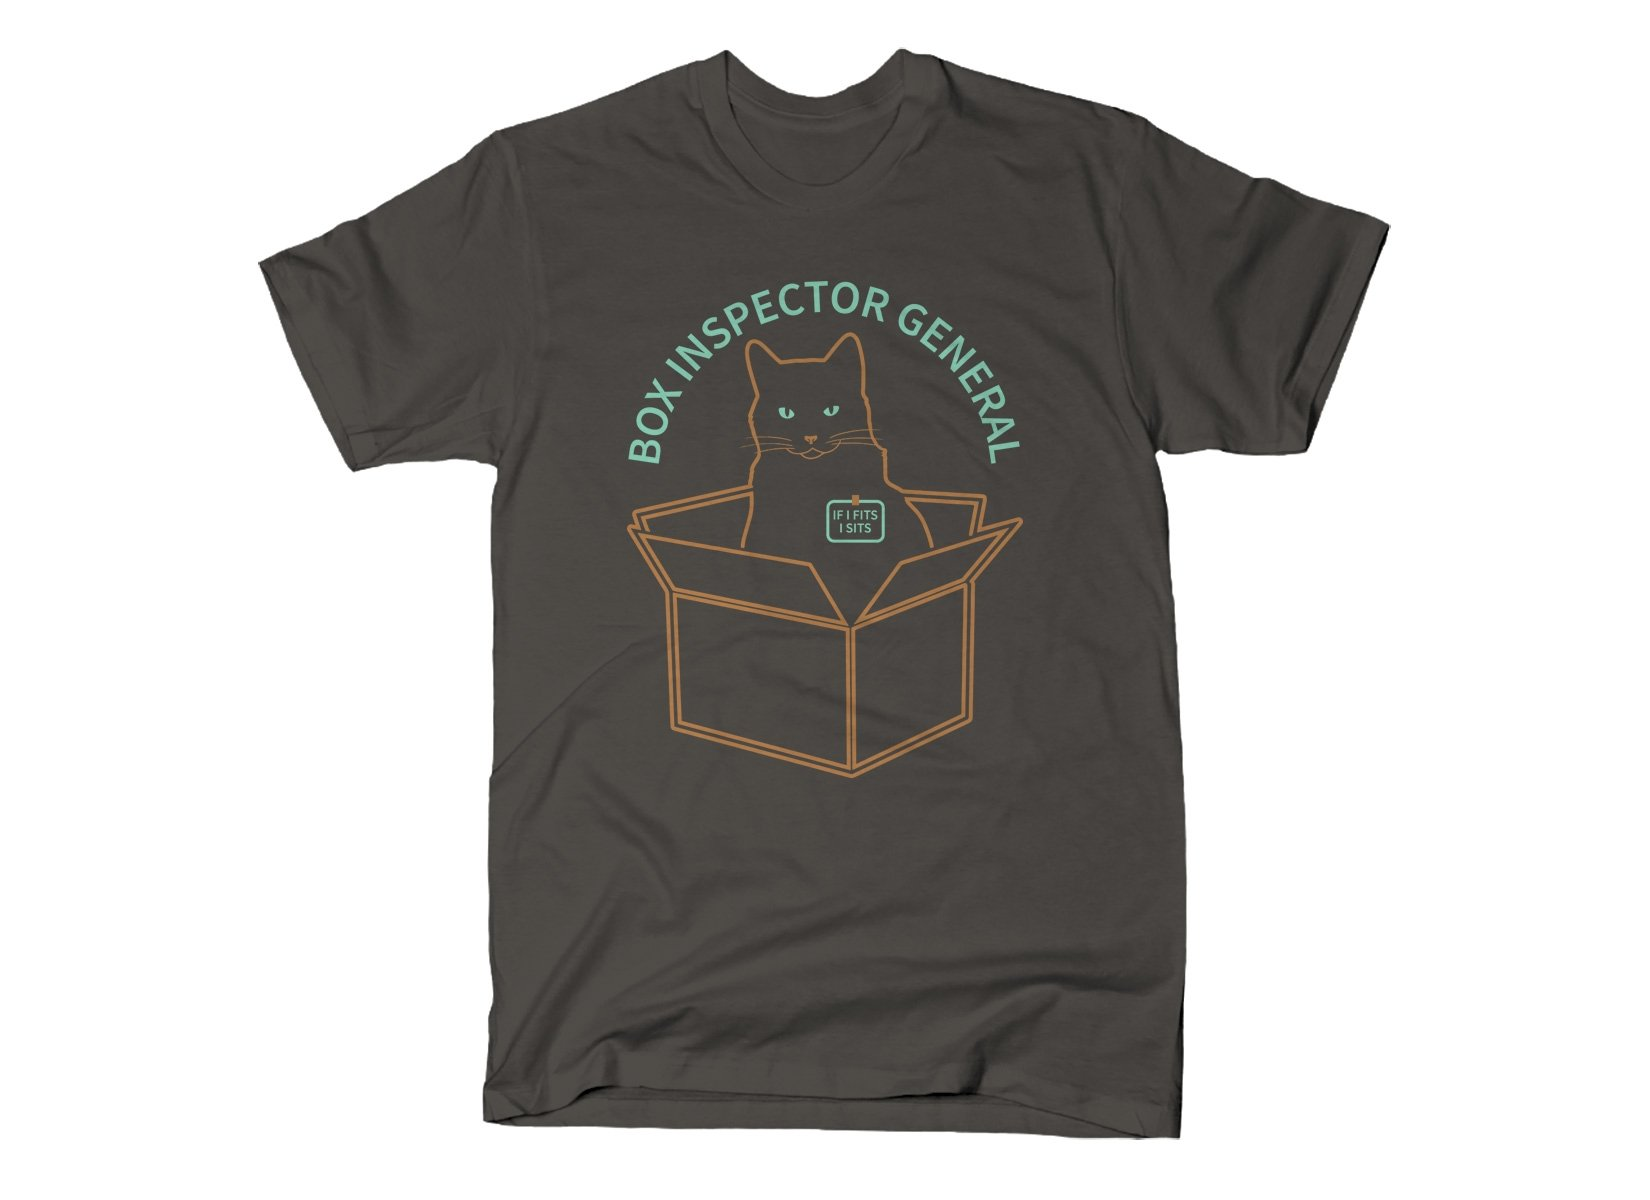 Box Inspector General on Mens T-Shirt